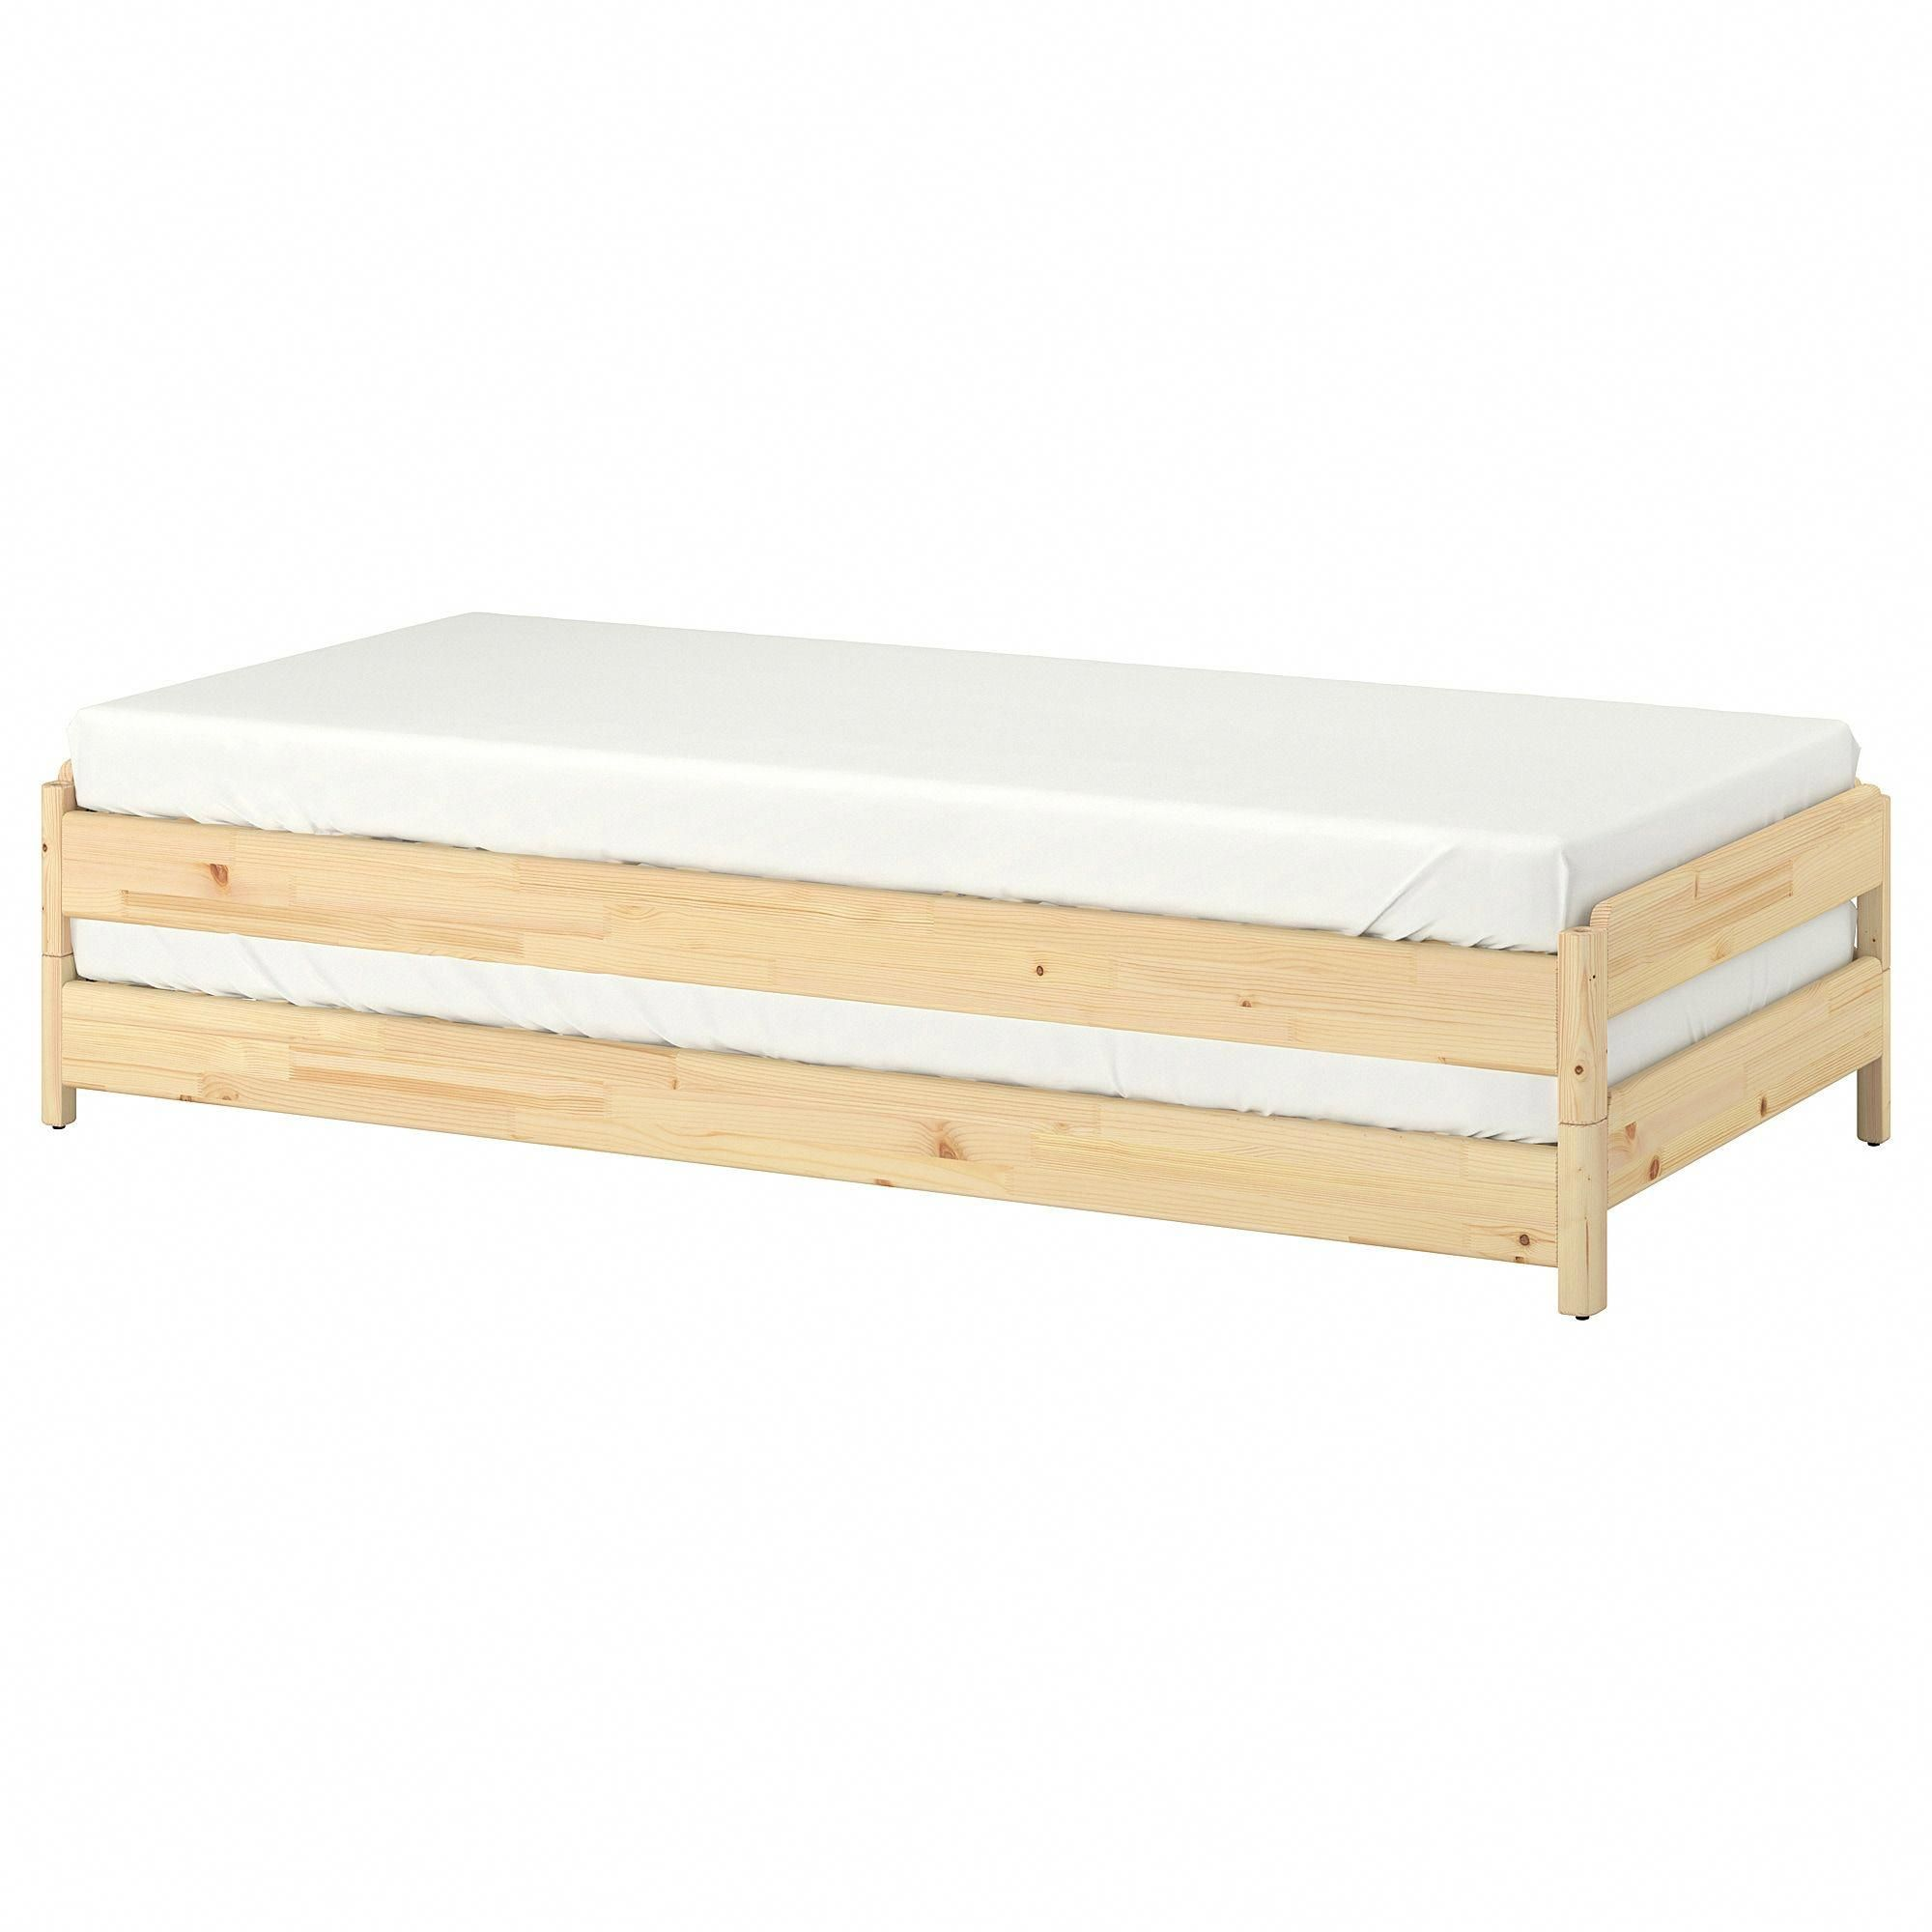 IKEA UTÅKER, Stackable bed, pine, You can quickly